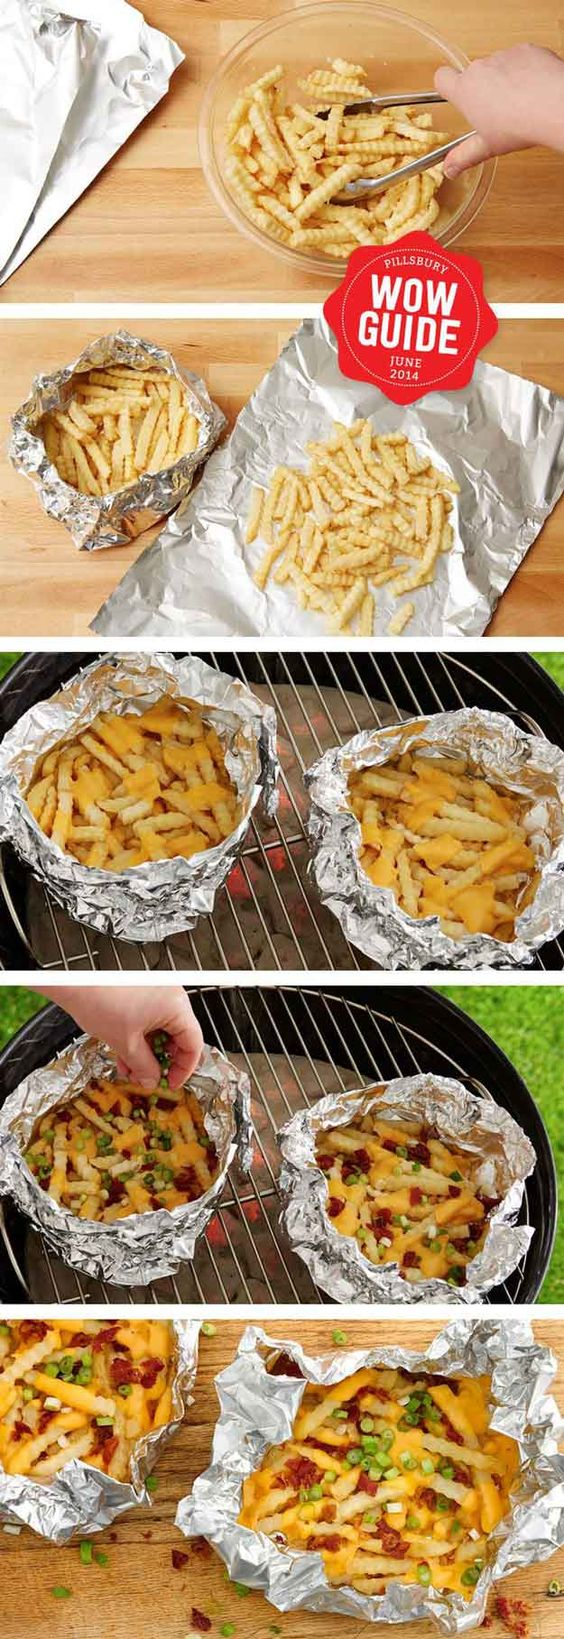 Grilled Foil-Pack Cheesy Fries | 44 Saucy BBQ Recipes & Ideas for Creative…